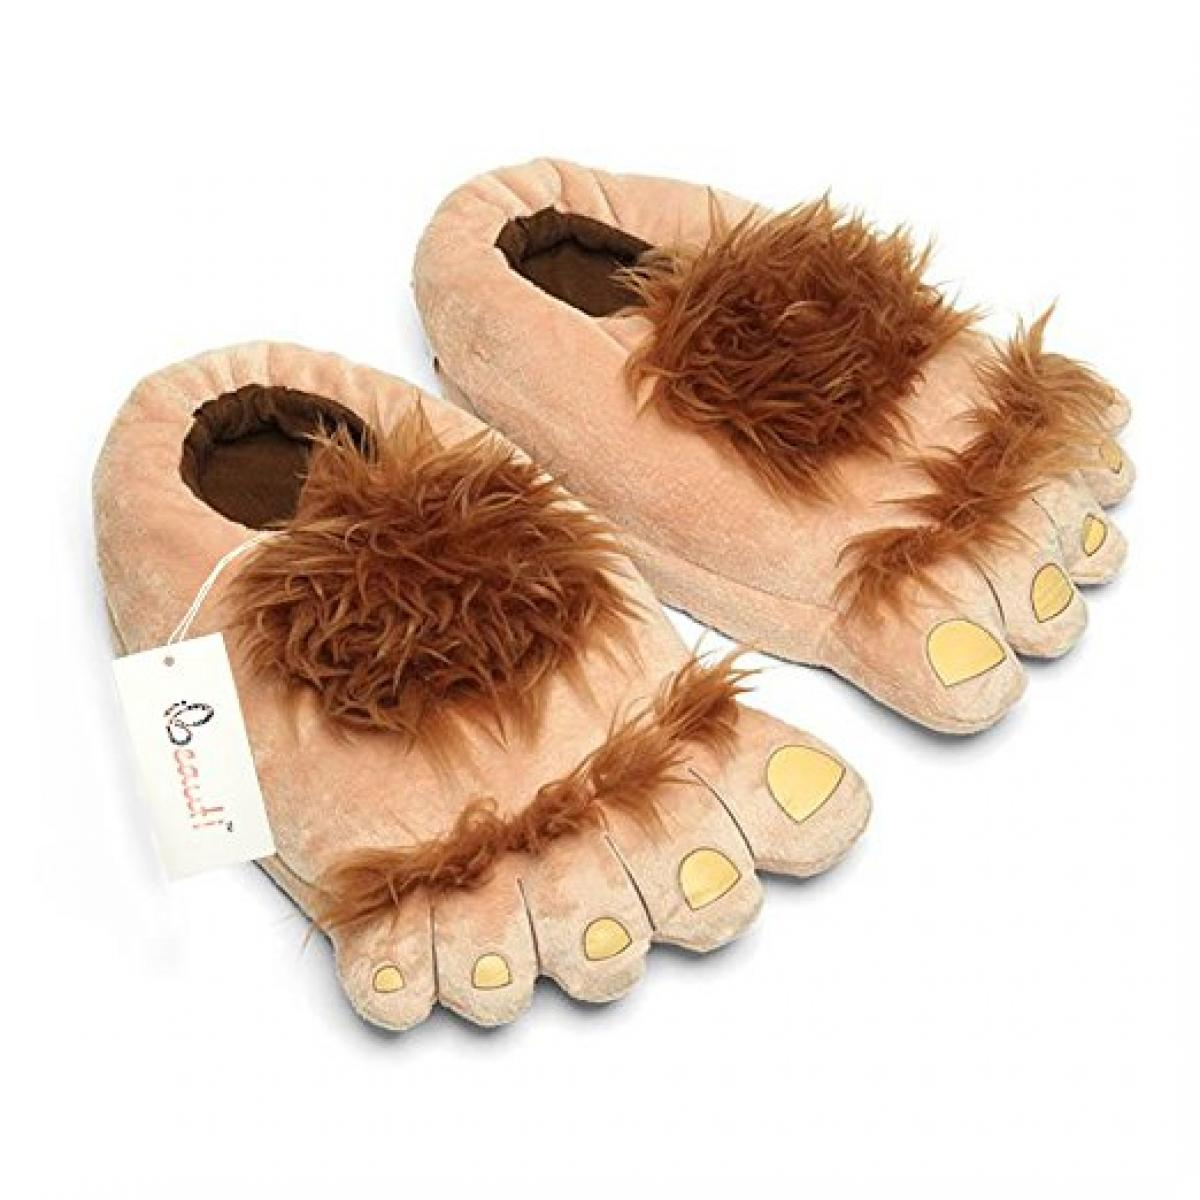 Hobbit Adventure Slippers